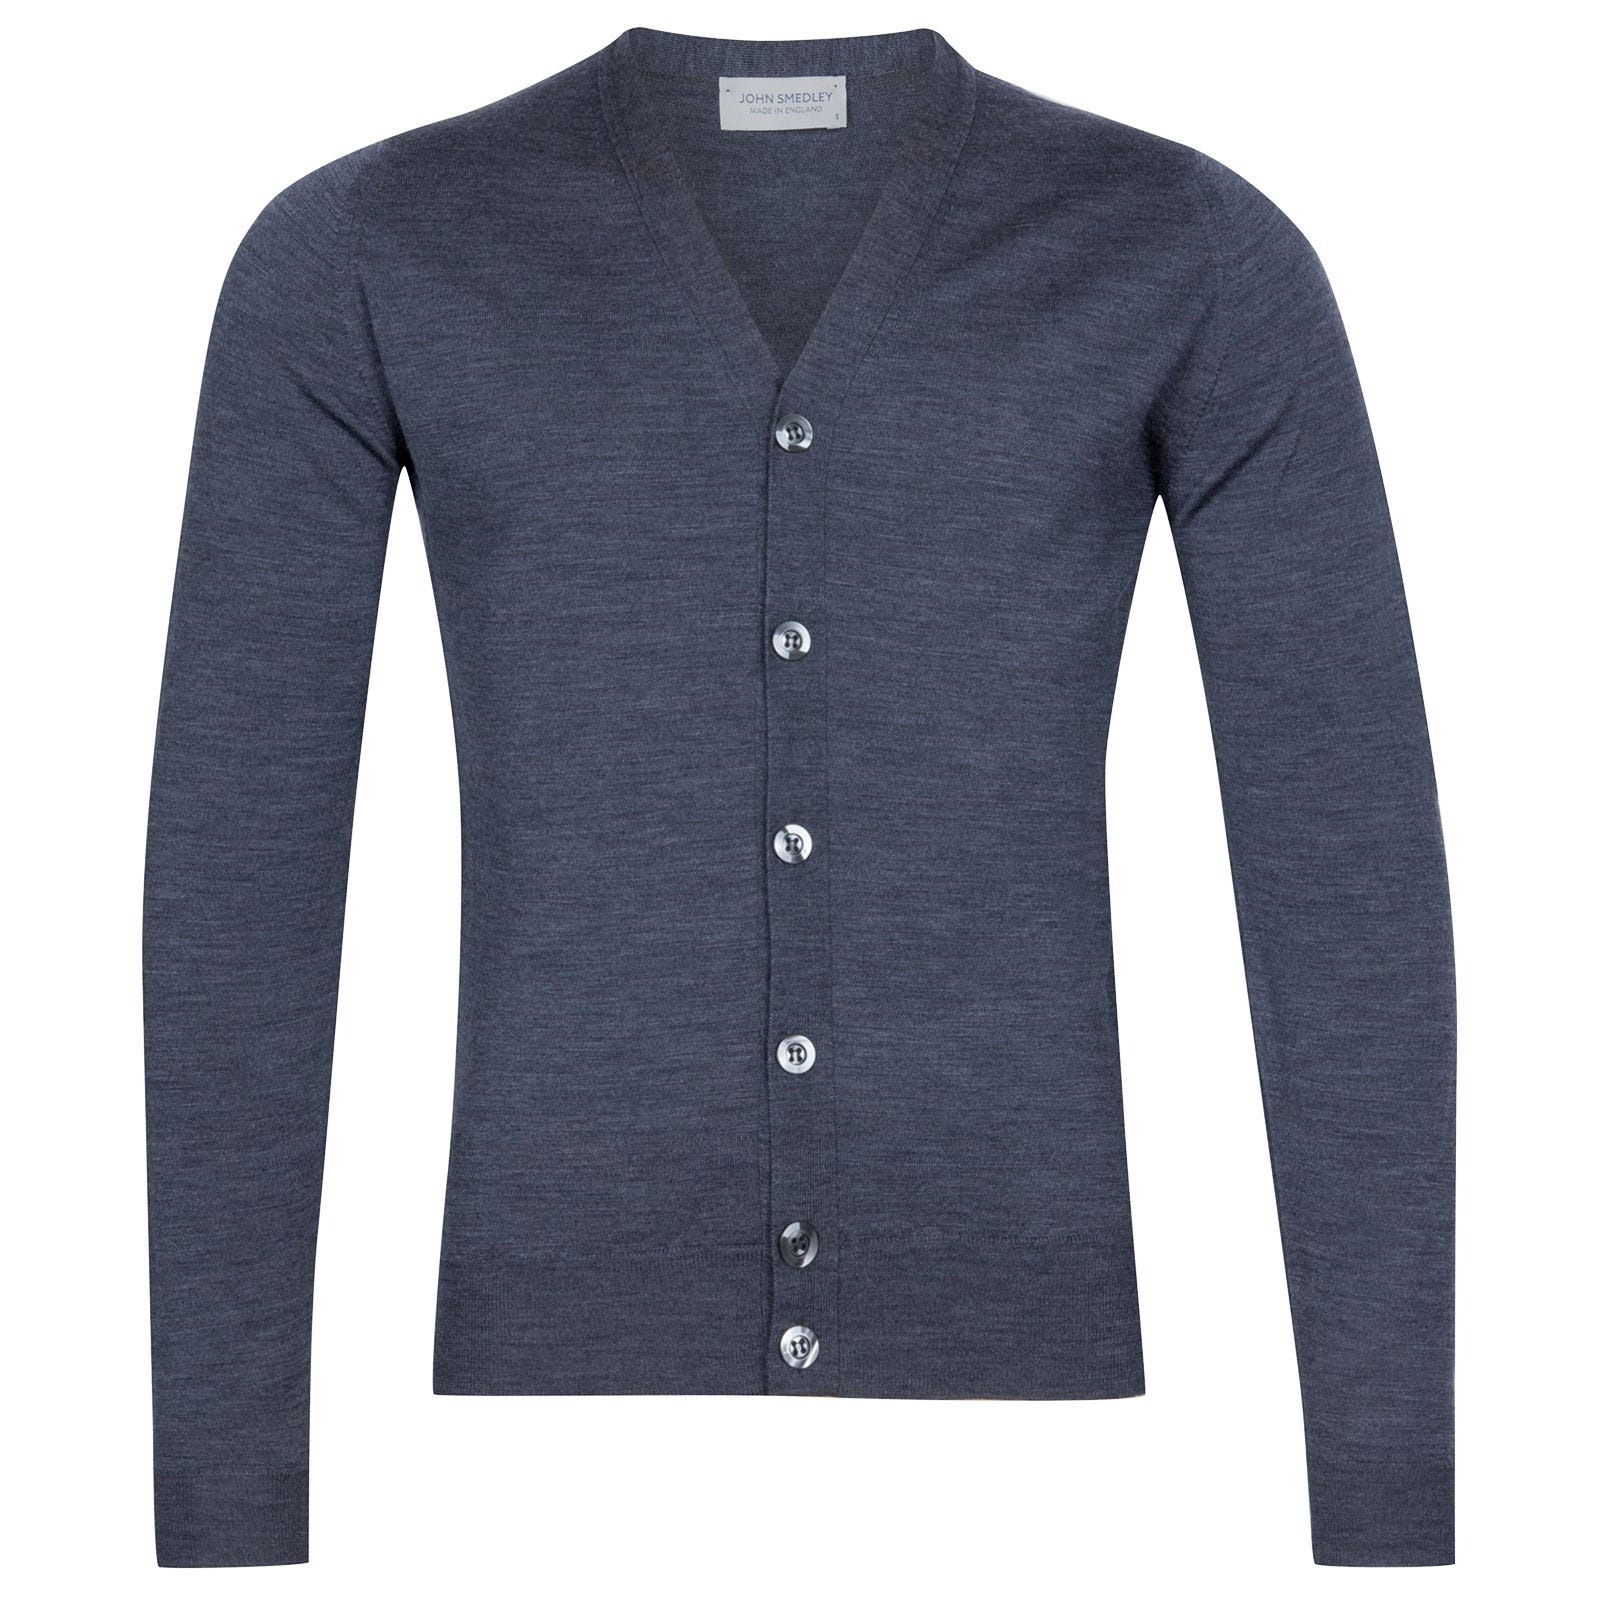 John Smedley Naples Merino Wool Cardigan in Charcoal-L